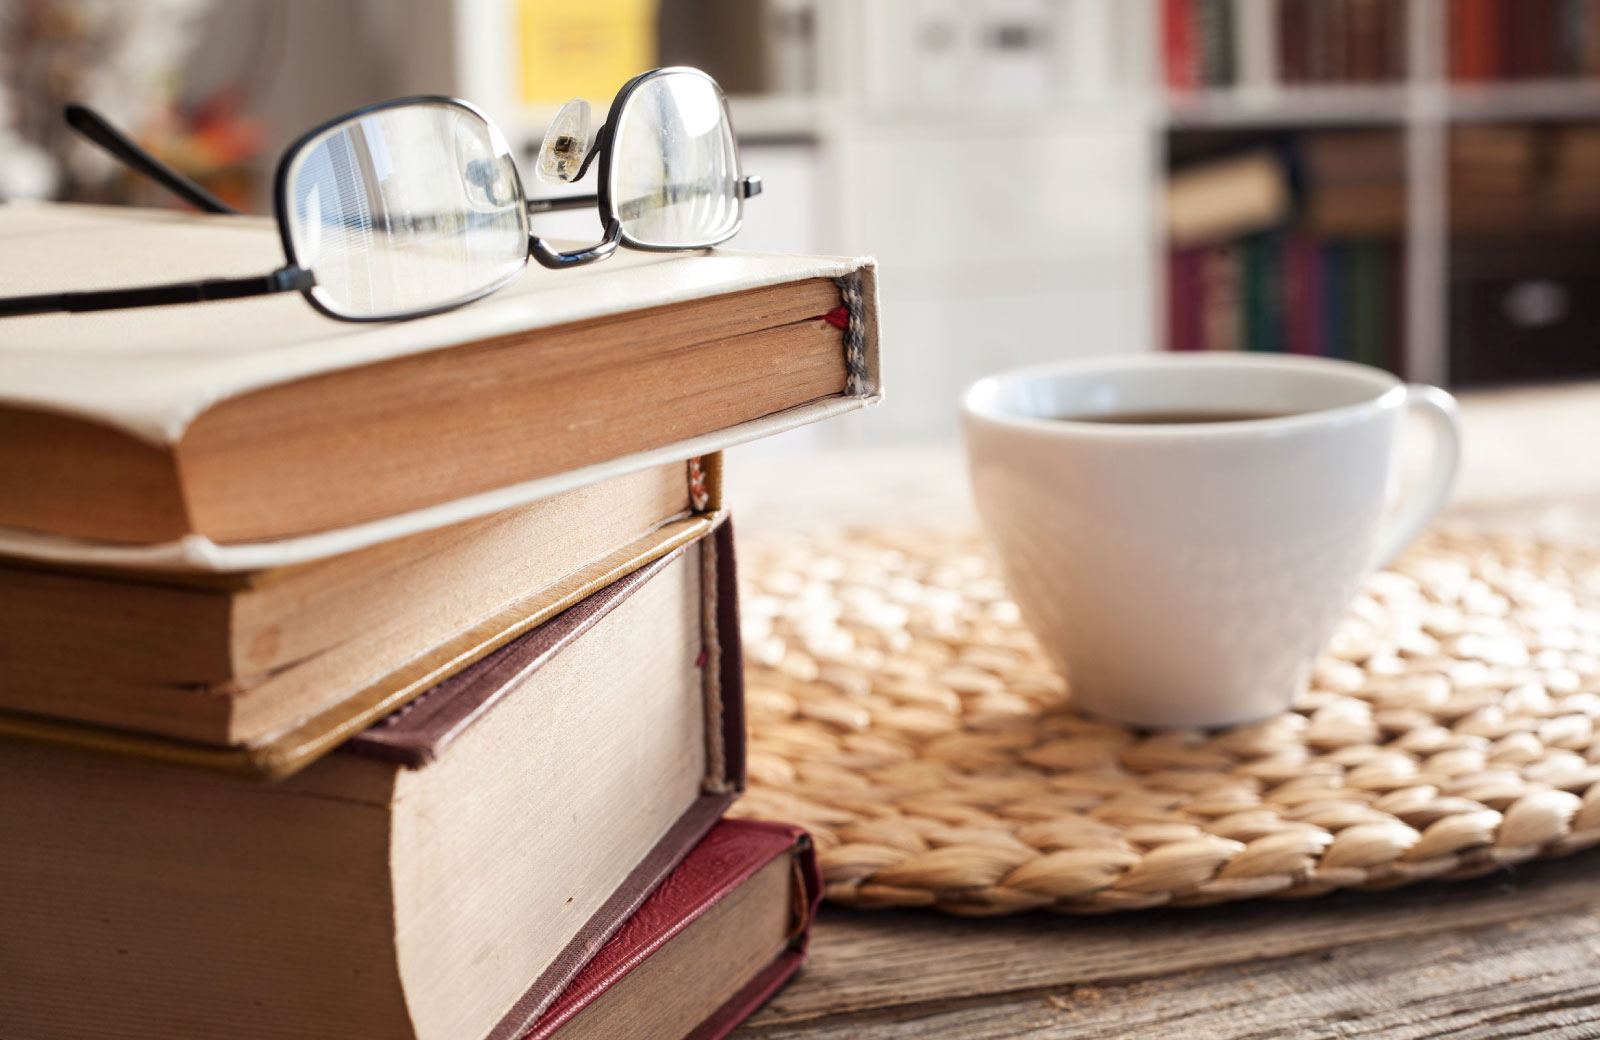 books eyeglasses and coffee on table